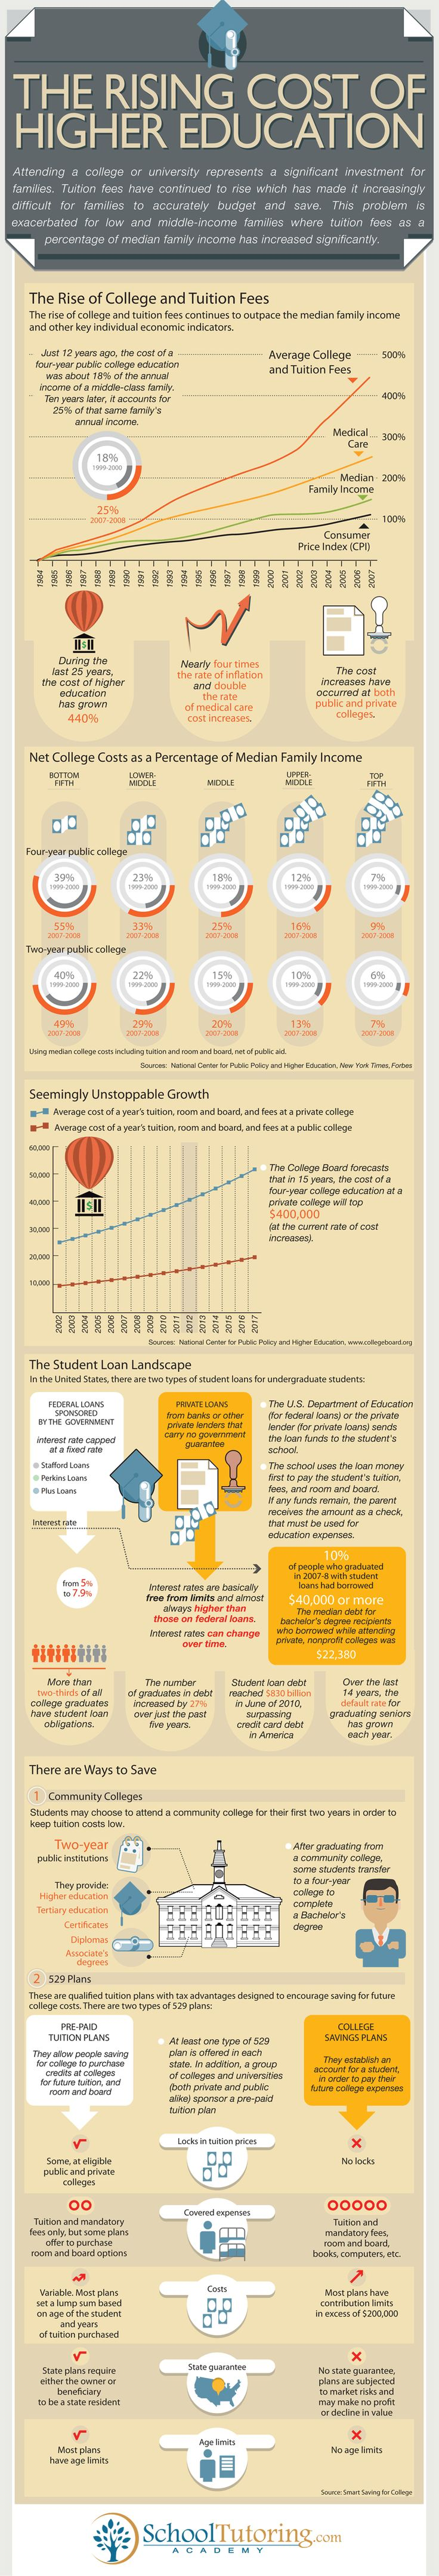 best images about higher education infographics here is an infographic by school tutoring about the rising cost of higher education sections on the rise of college and tuition fees net college costs